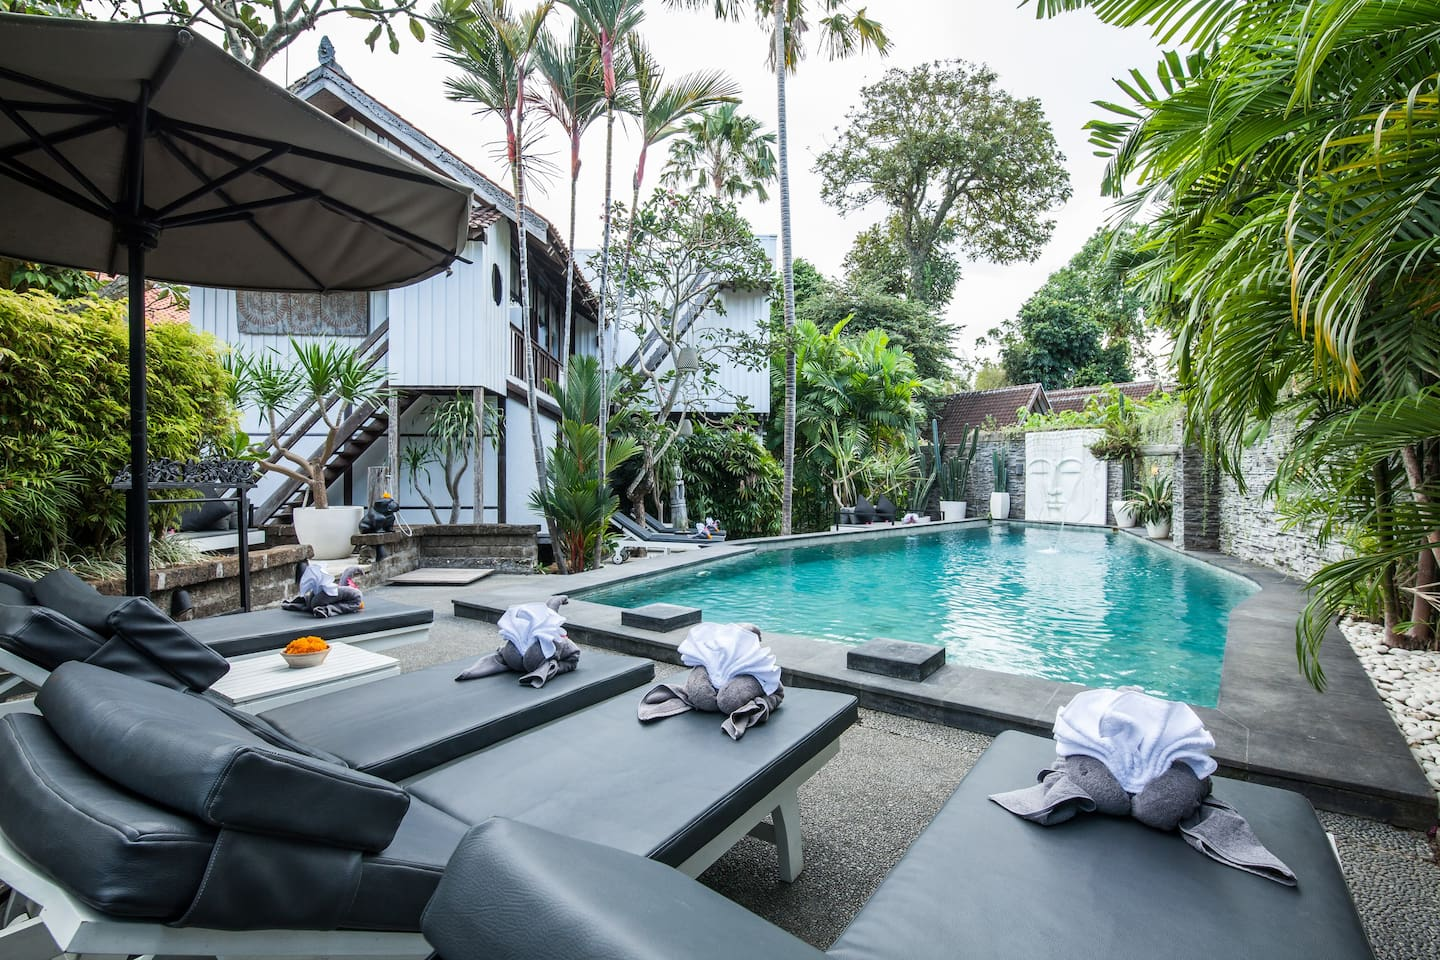 Private swimming pool of Villa Sembunyi during the day